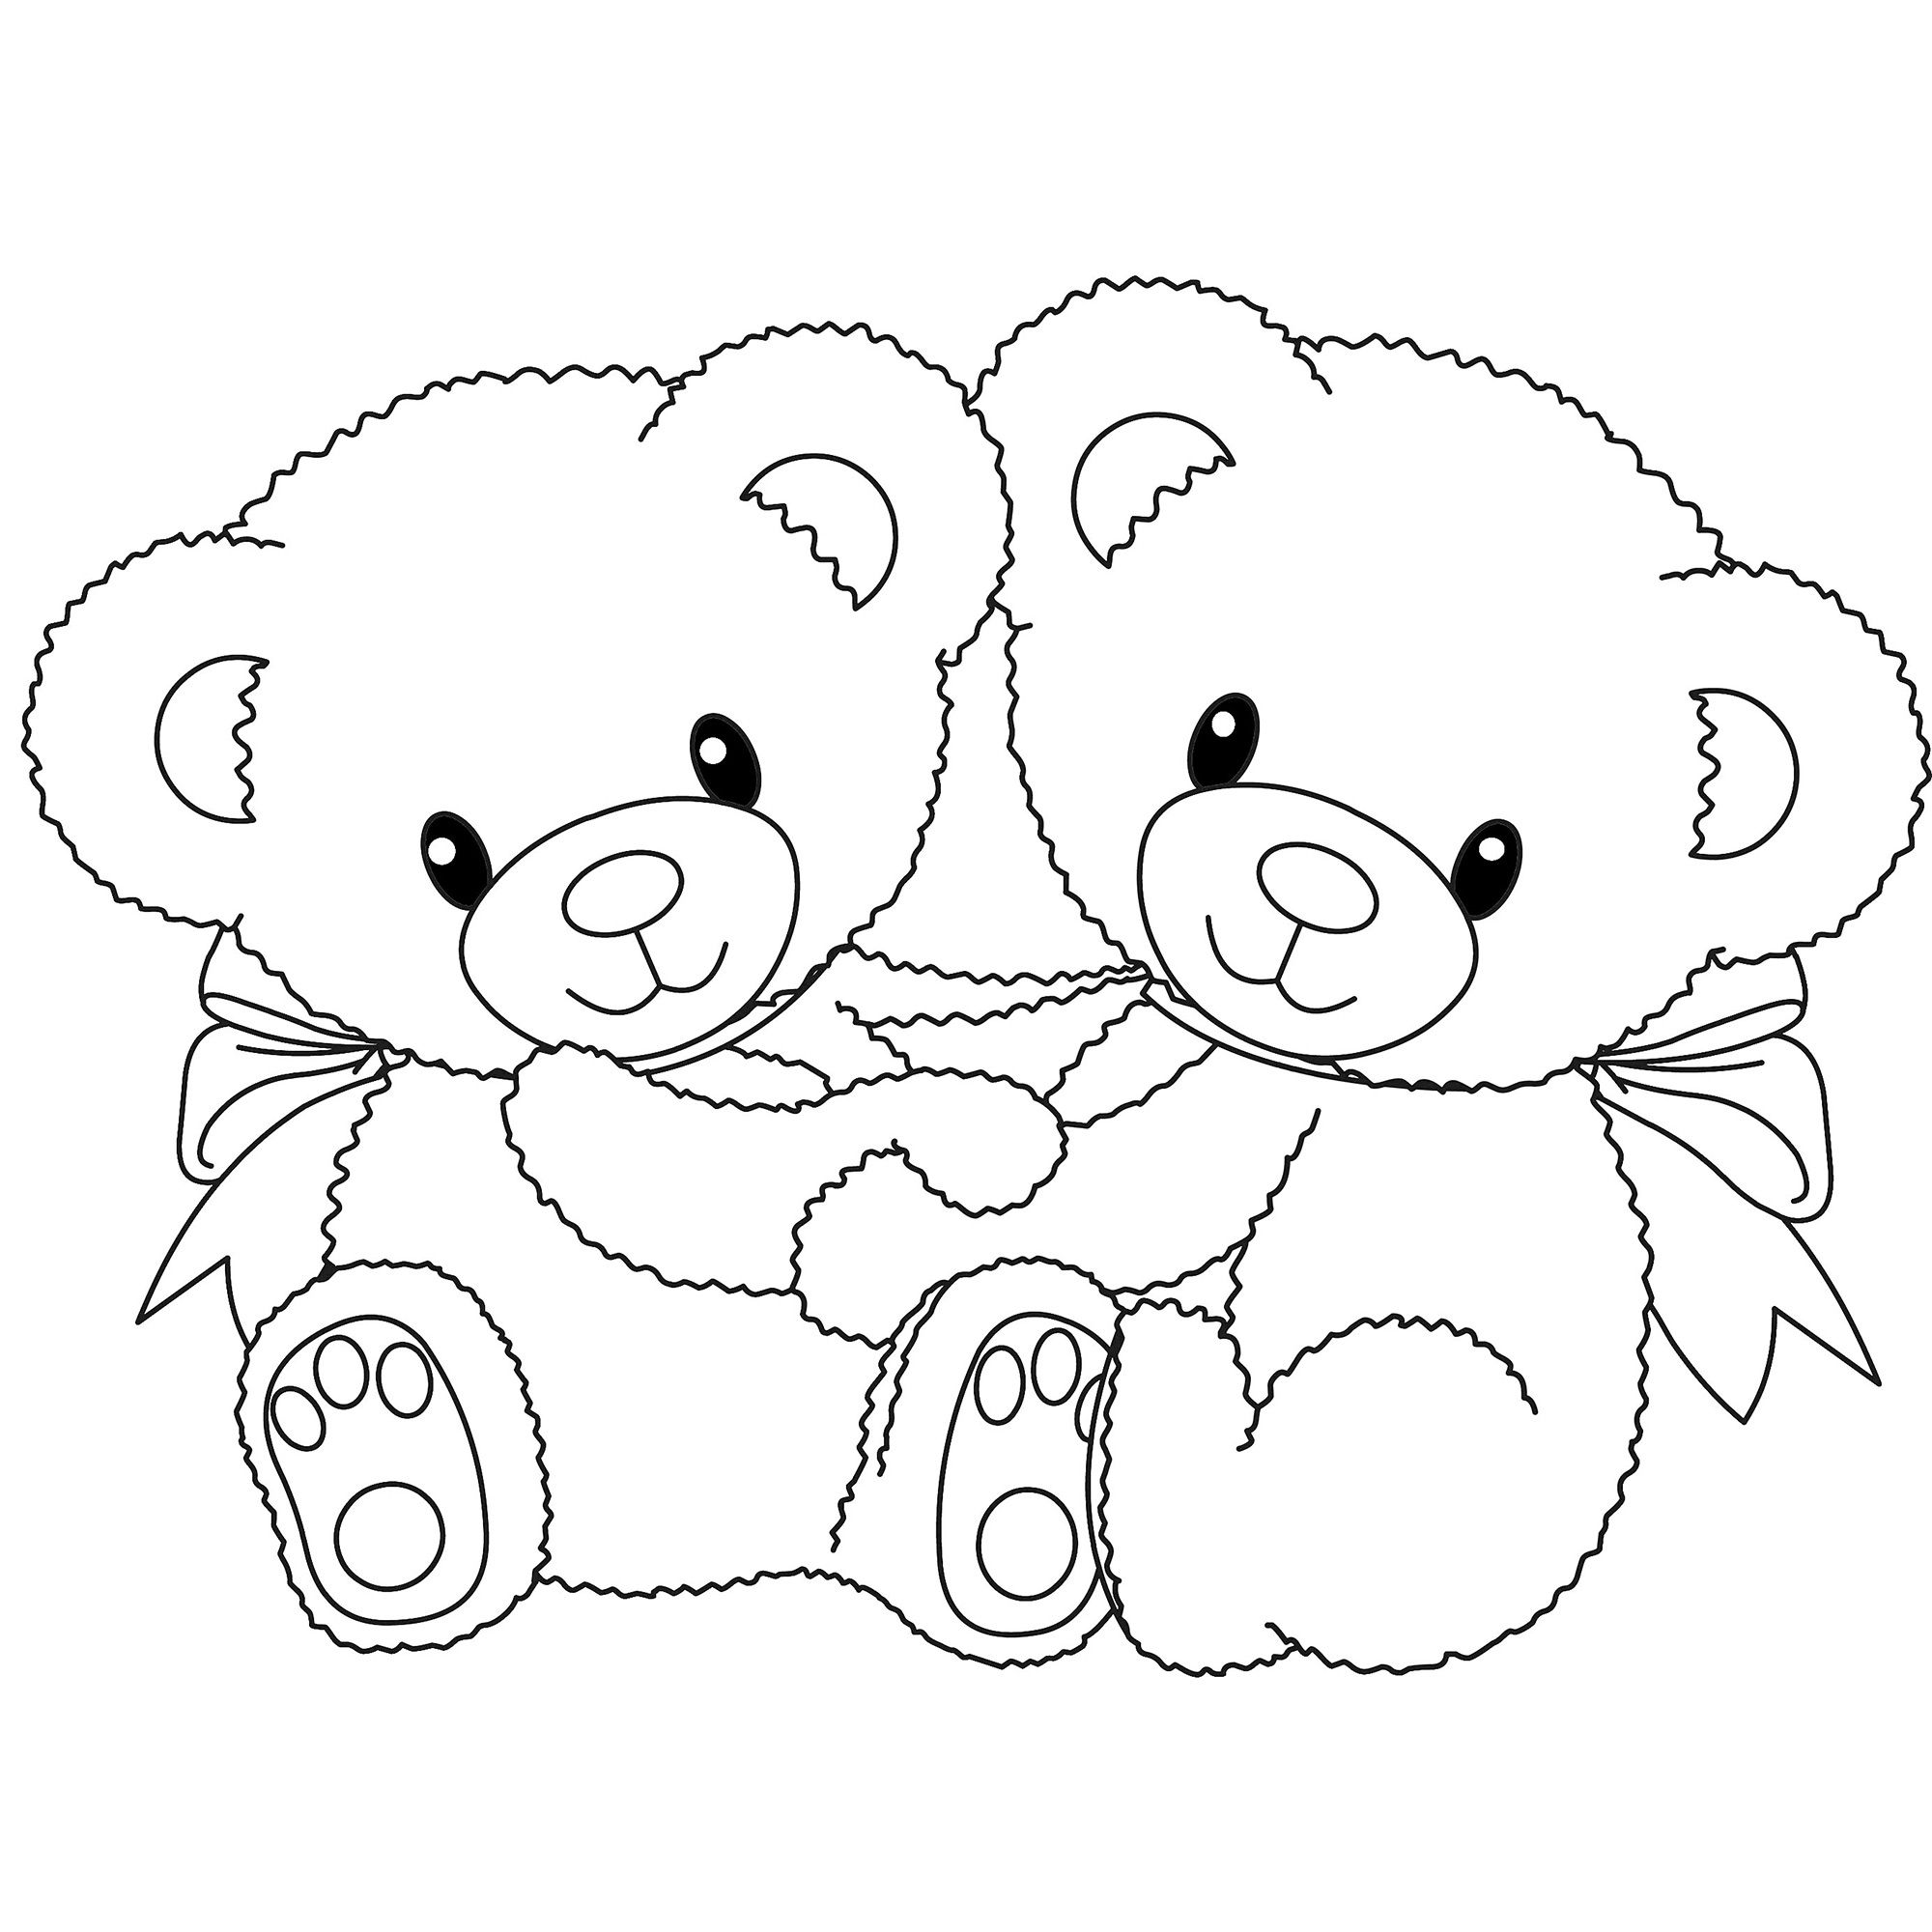 Teddy bear coloring pages free printable coloring pages for Free bear coloring pages